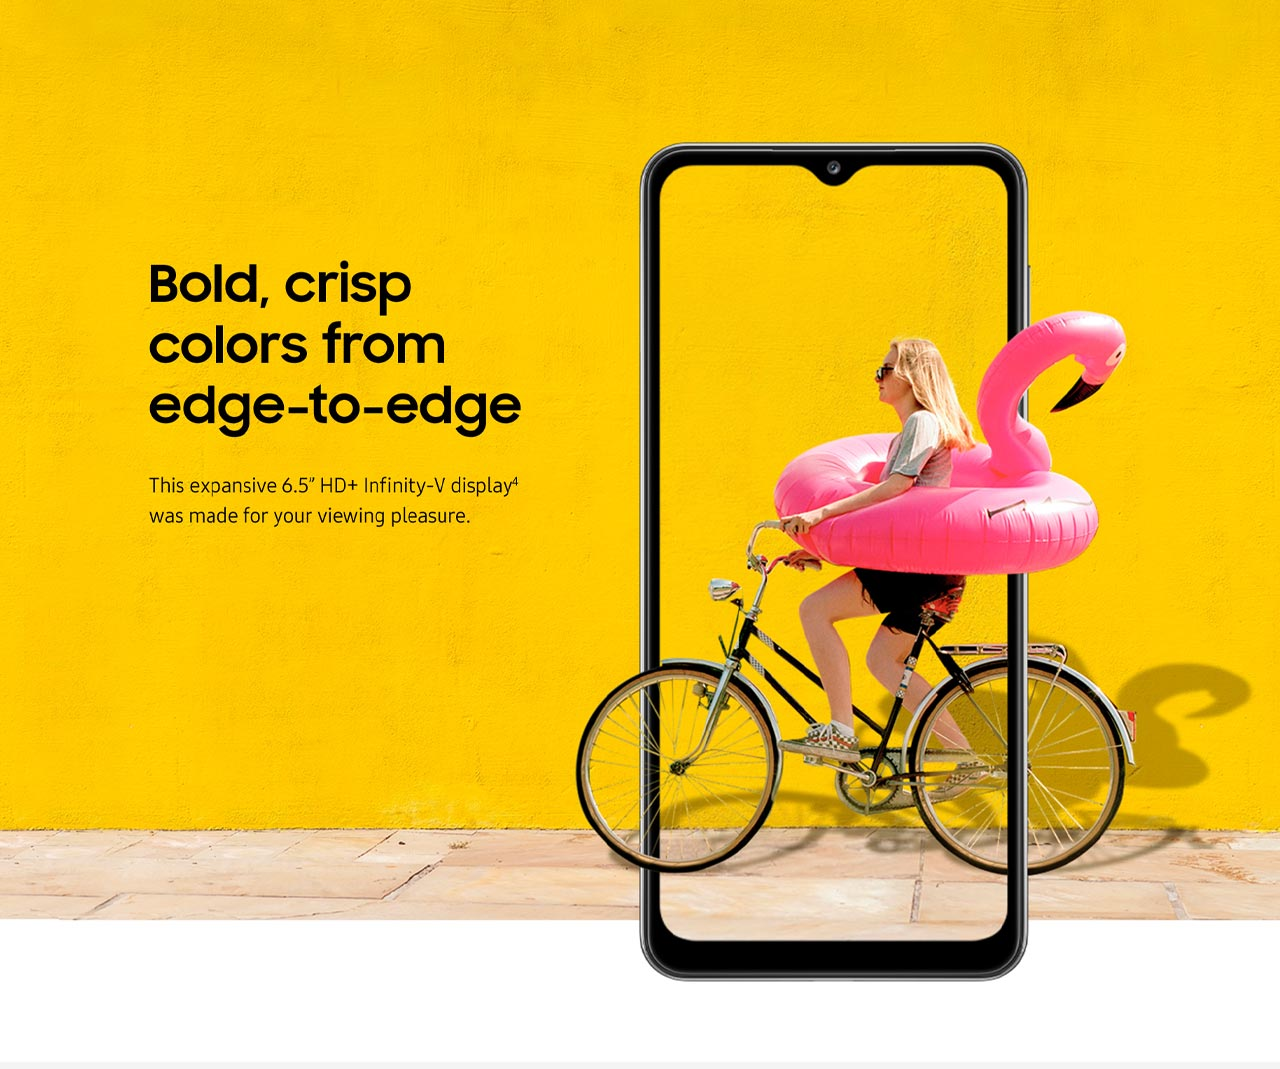 """Colores vivos, intensos de borde a borde. This expansive 6.5"""" HD+ Infinity-V display⁴ was made for your viewing pleasure."""